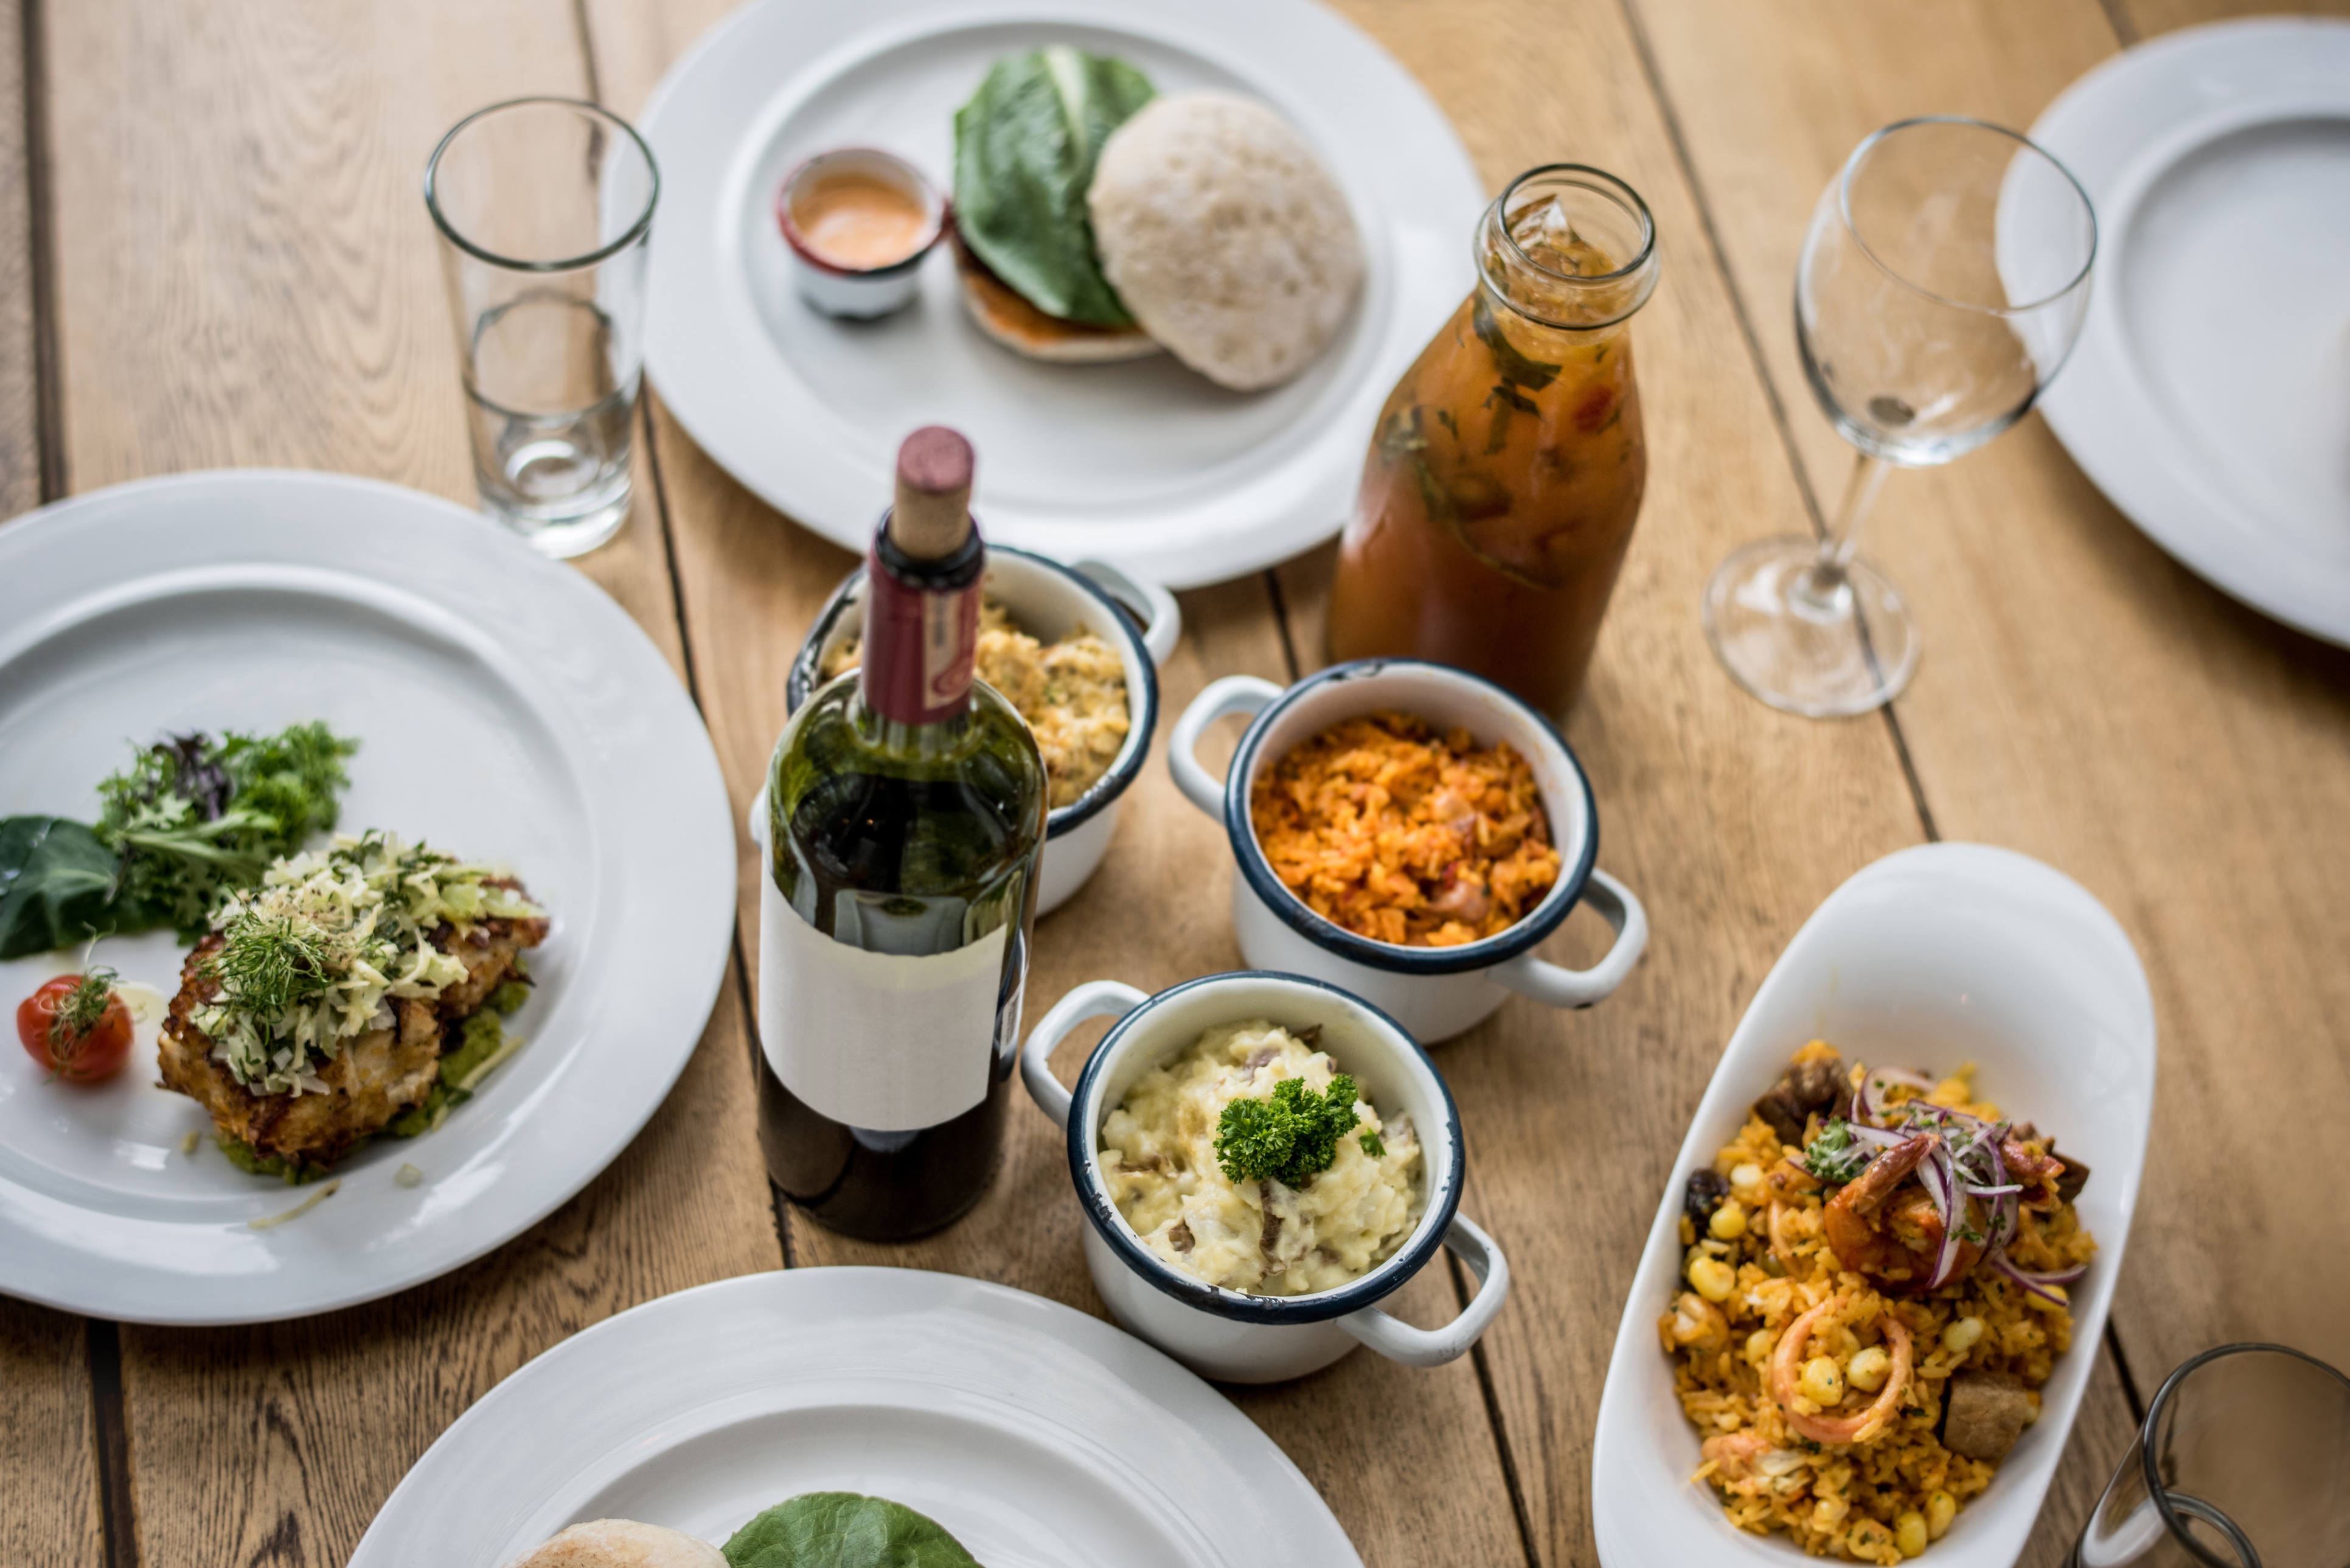 Latin American food served at a restaurant on a wooden table - food and drinks concepts